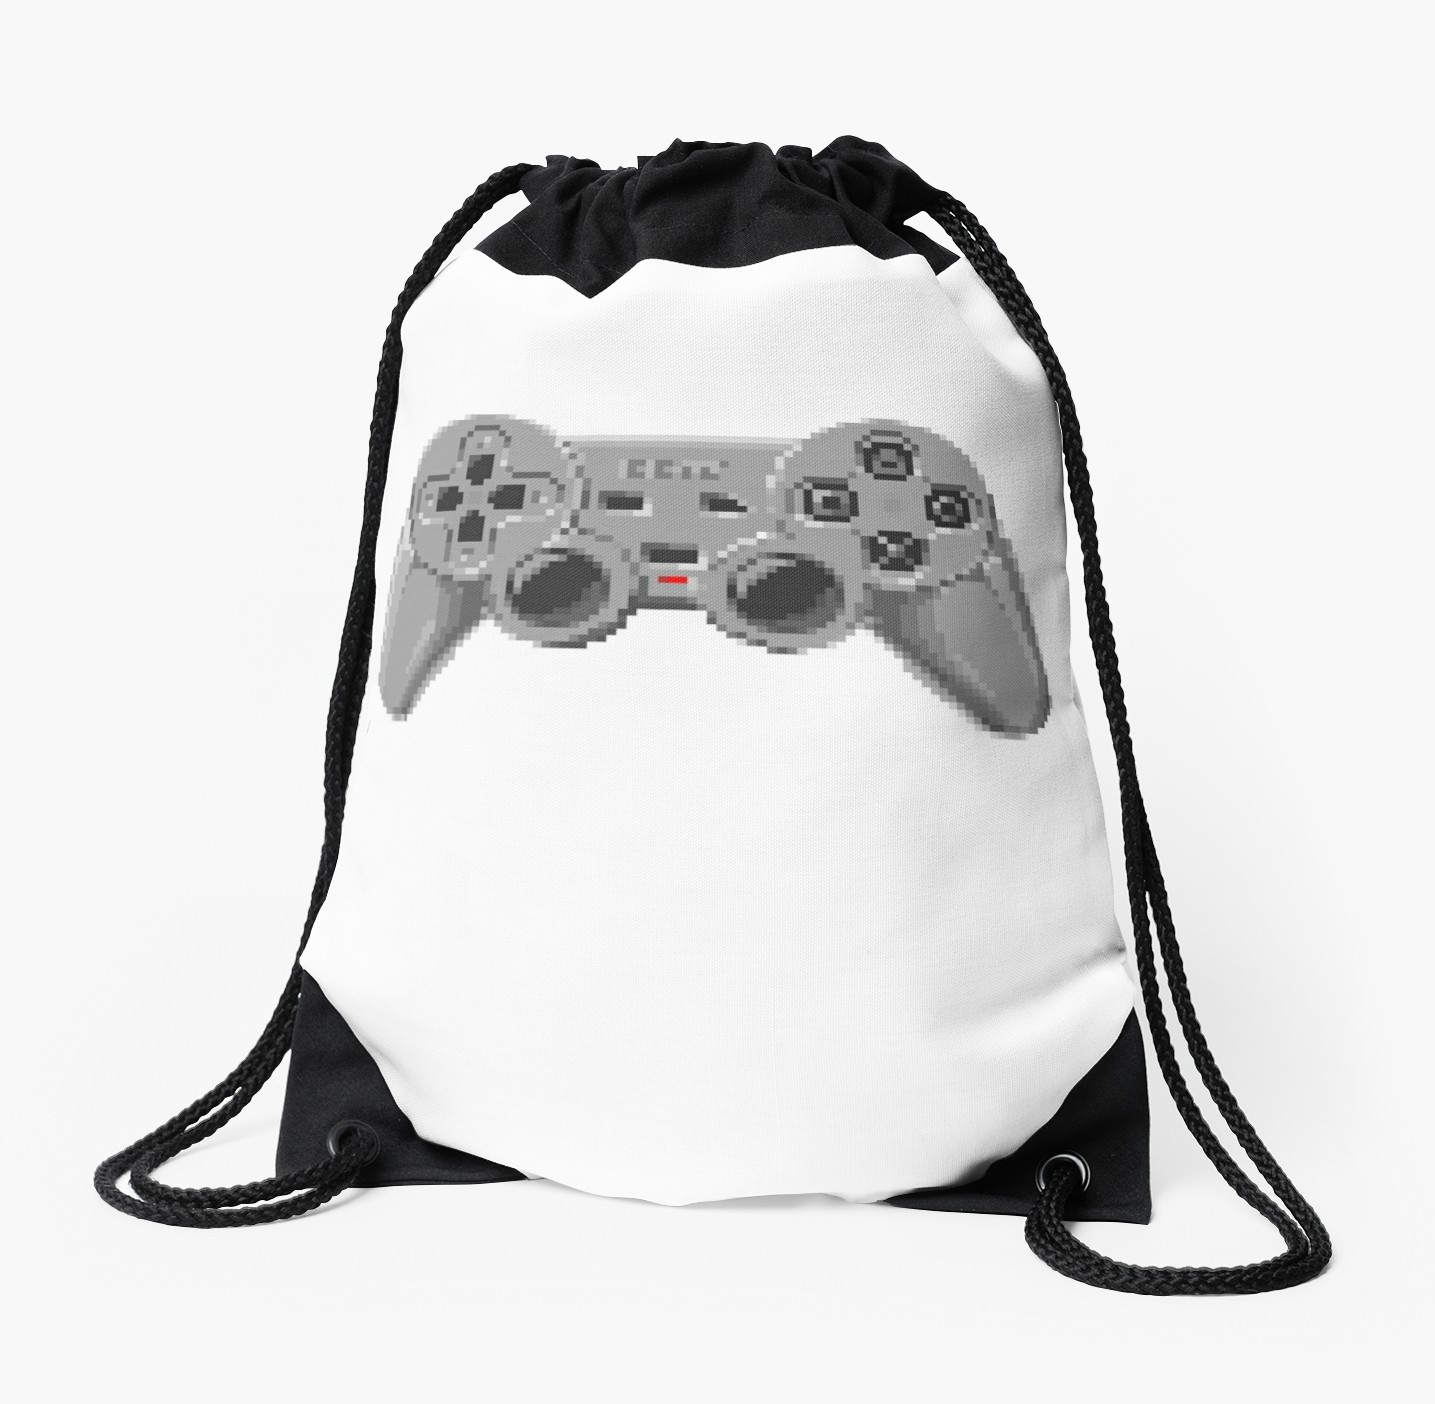 1435x1404 console gamepad pixel art drawstring bag